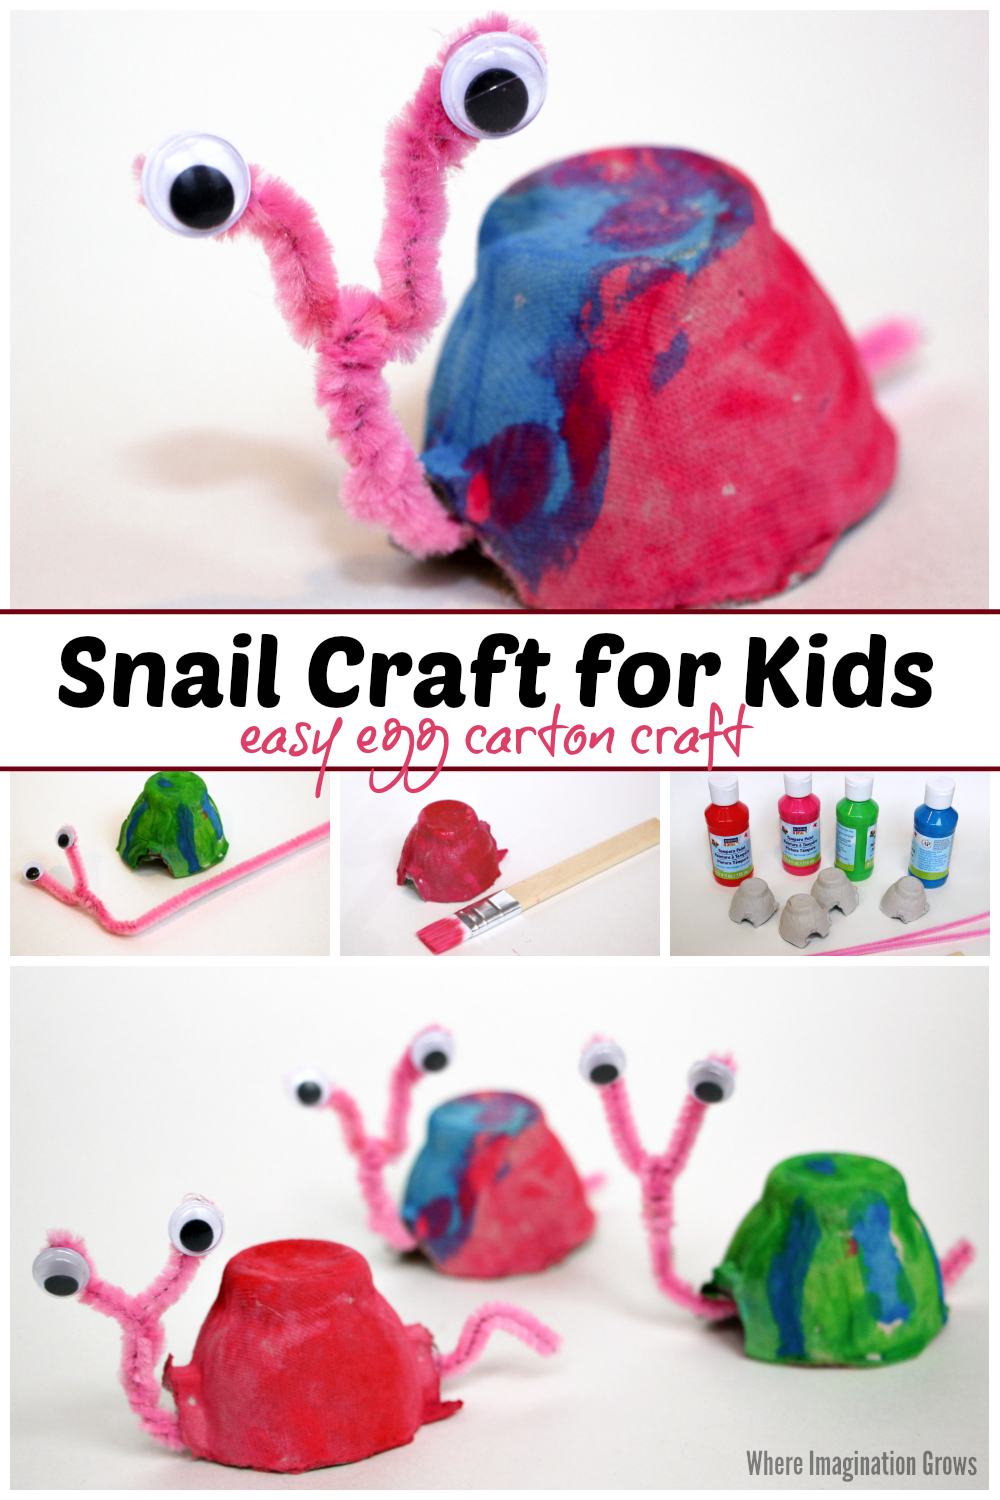 Recycled Egg Carton Snail Craft for Kids - Where Imagination Grows